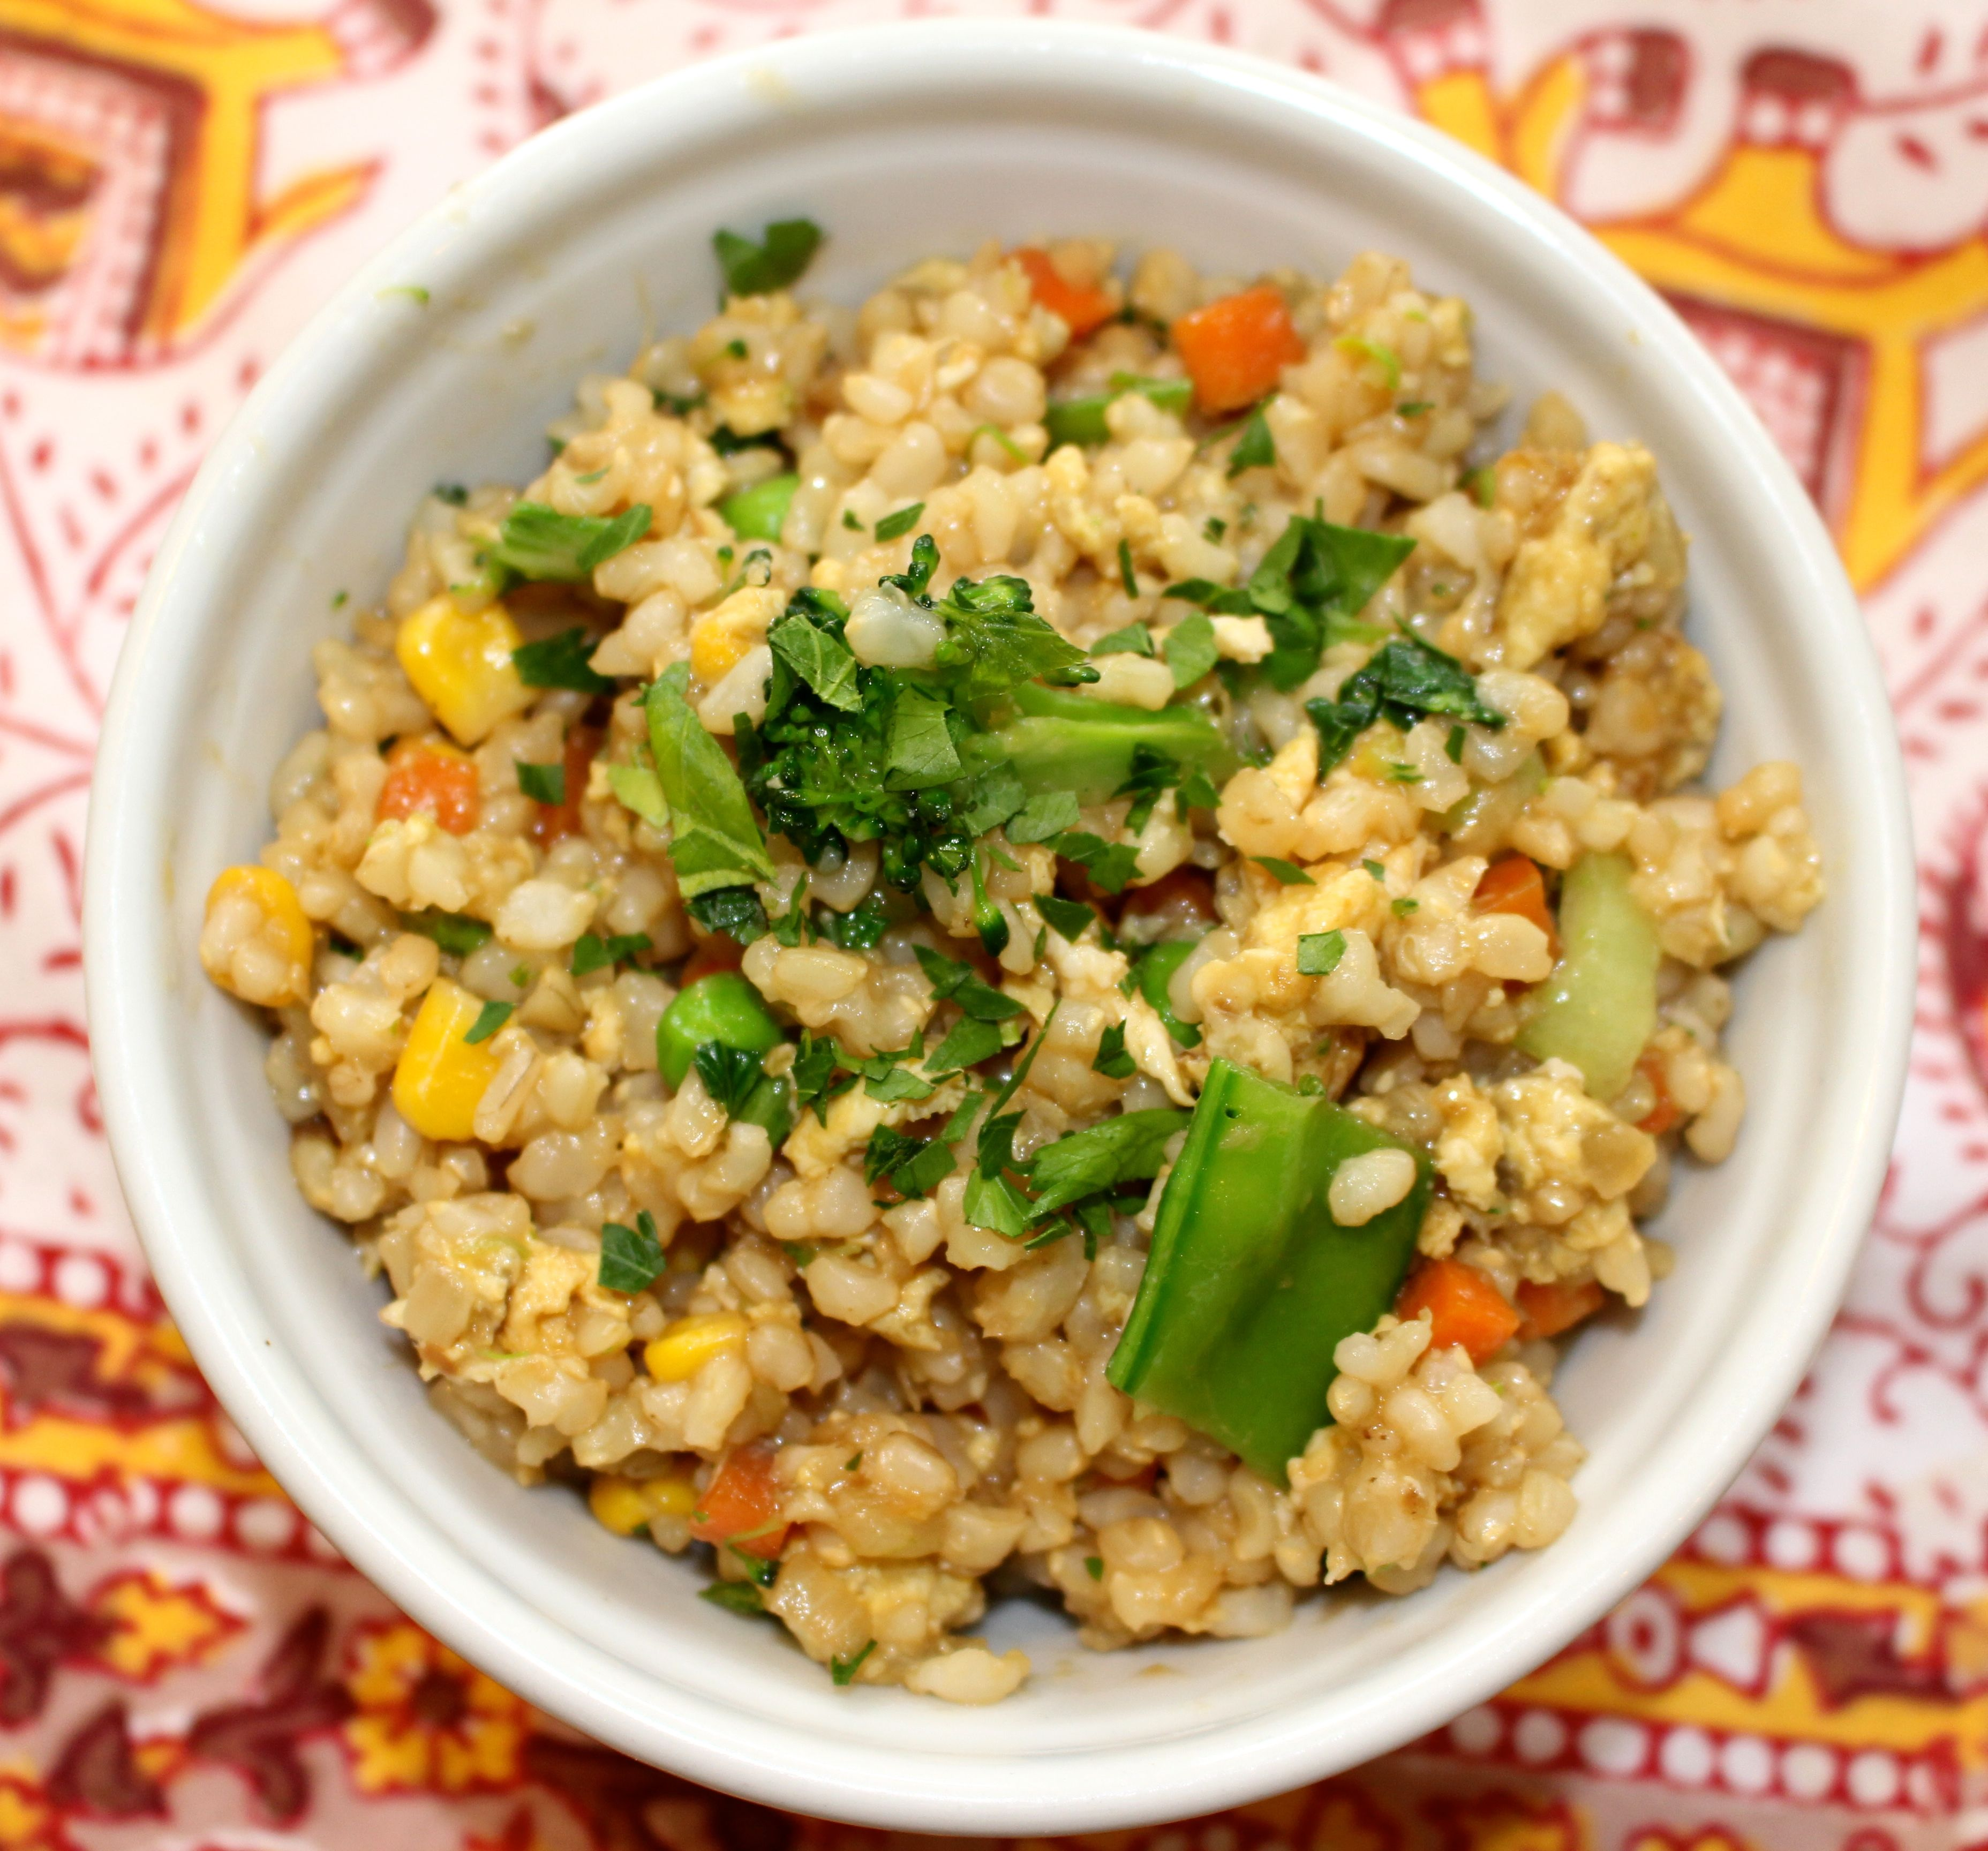 Recipe: Vegetable Fried Rice